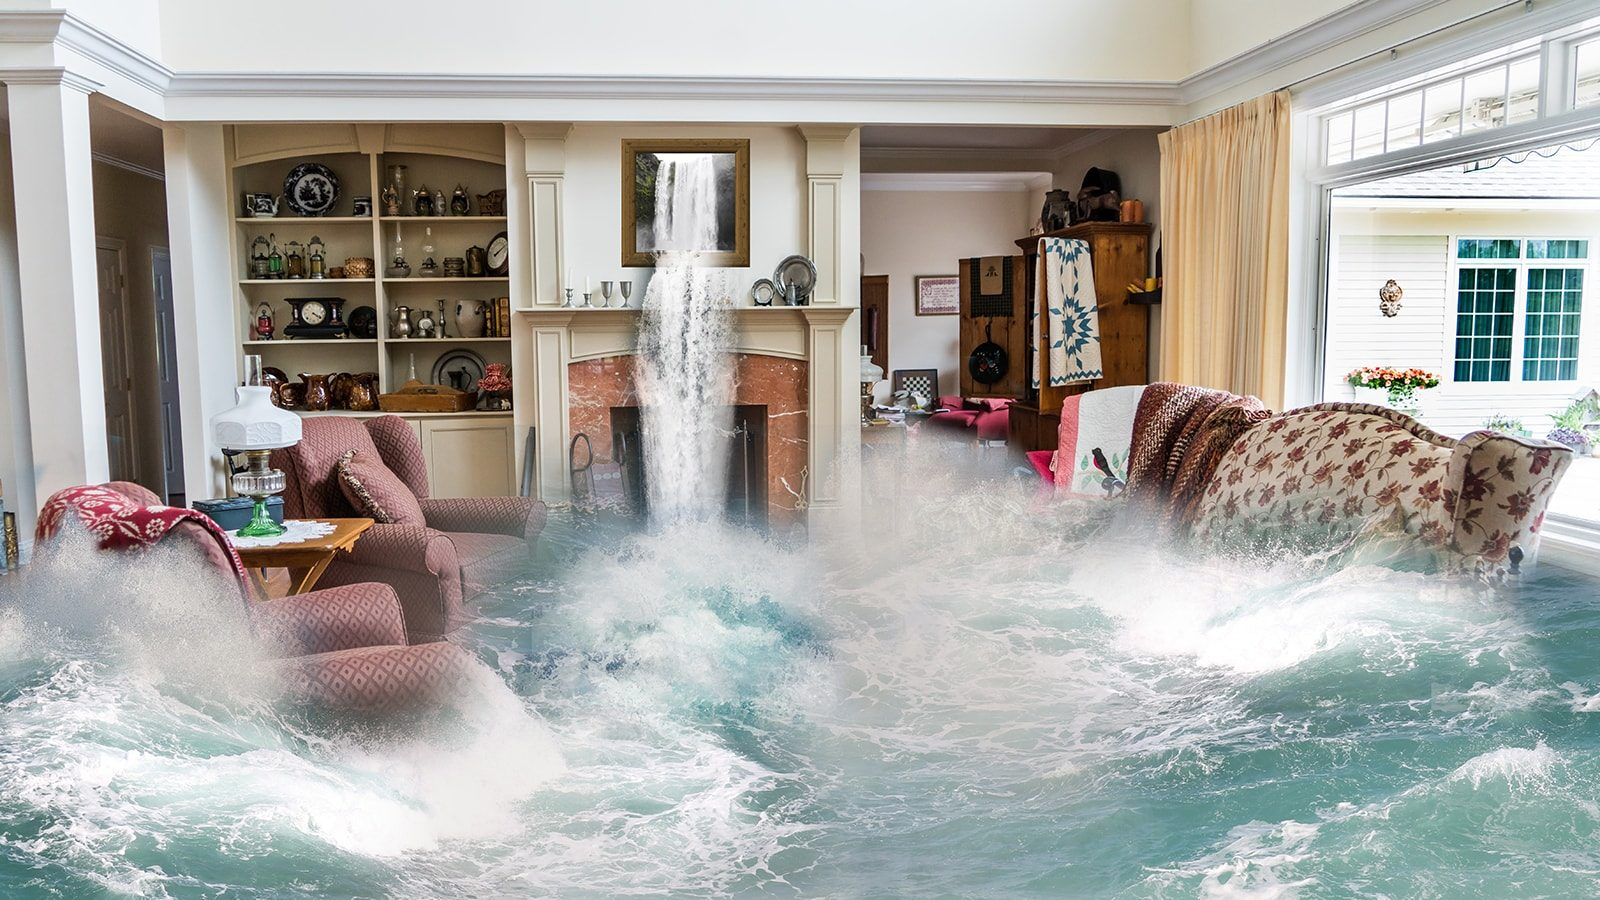 House being flooded